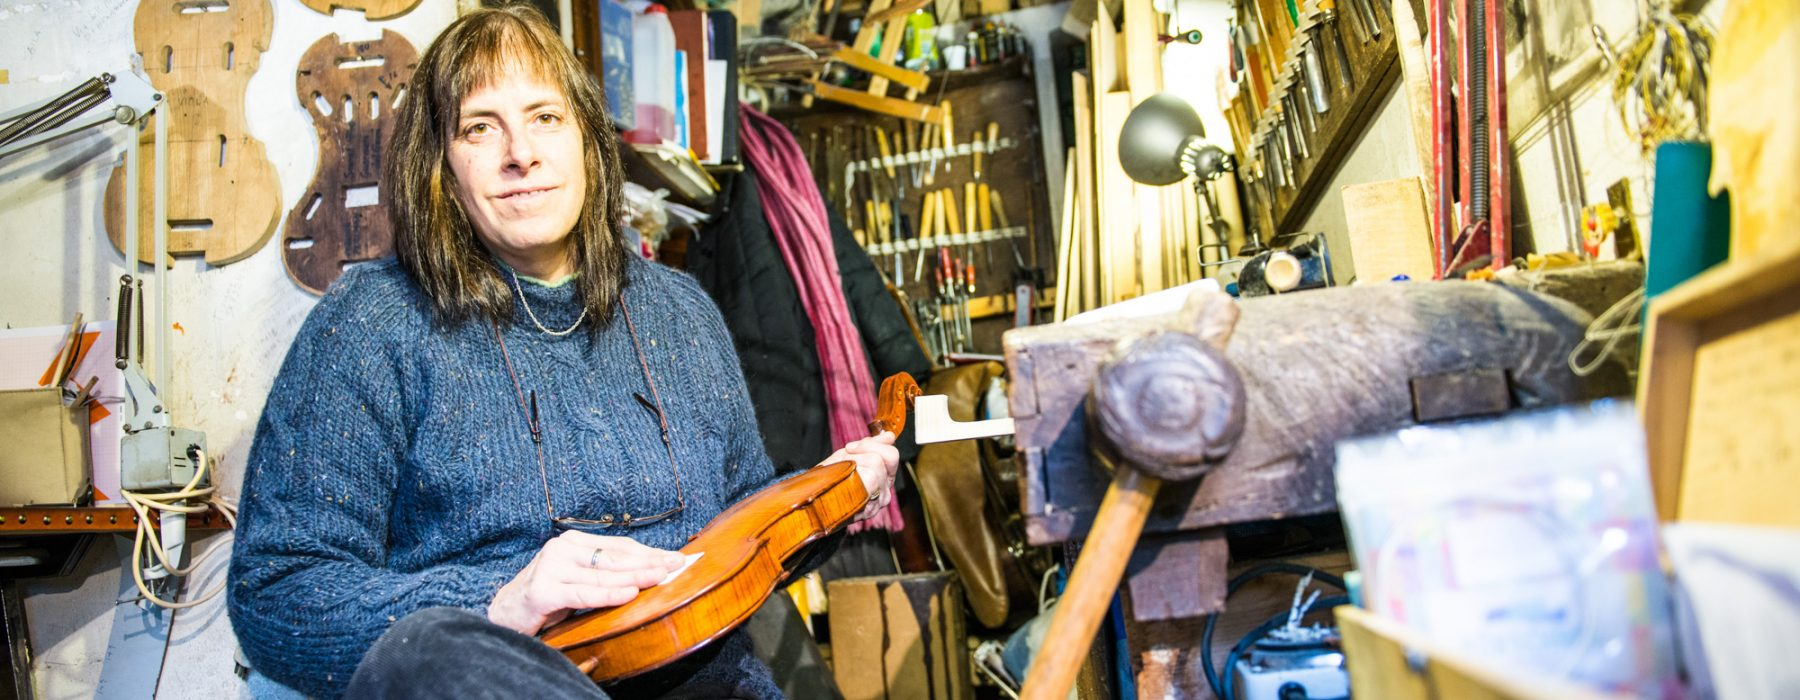 Luthier Lazzara: violin maker in a tiny and unique lutherie shop